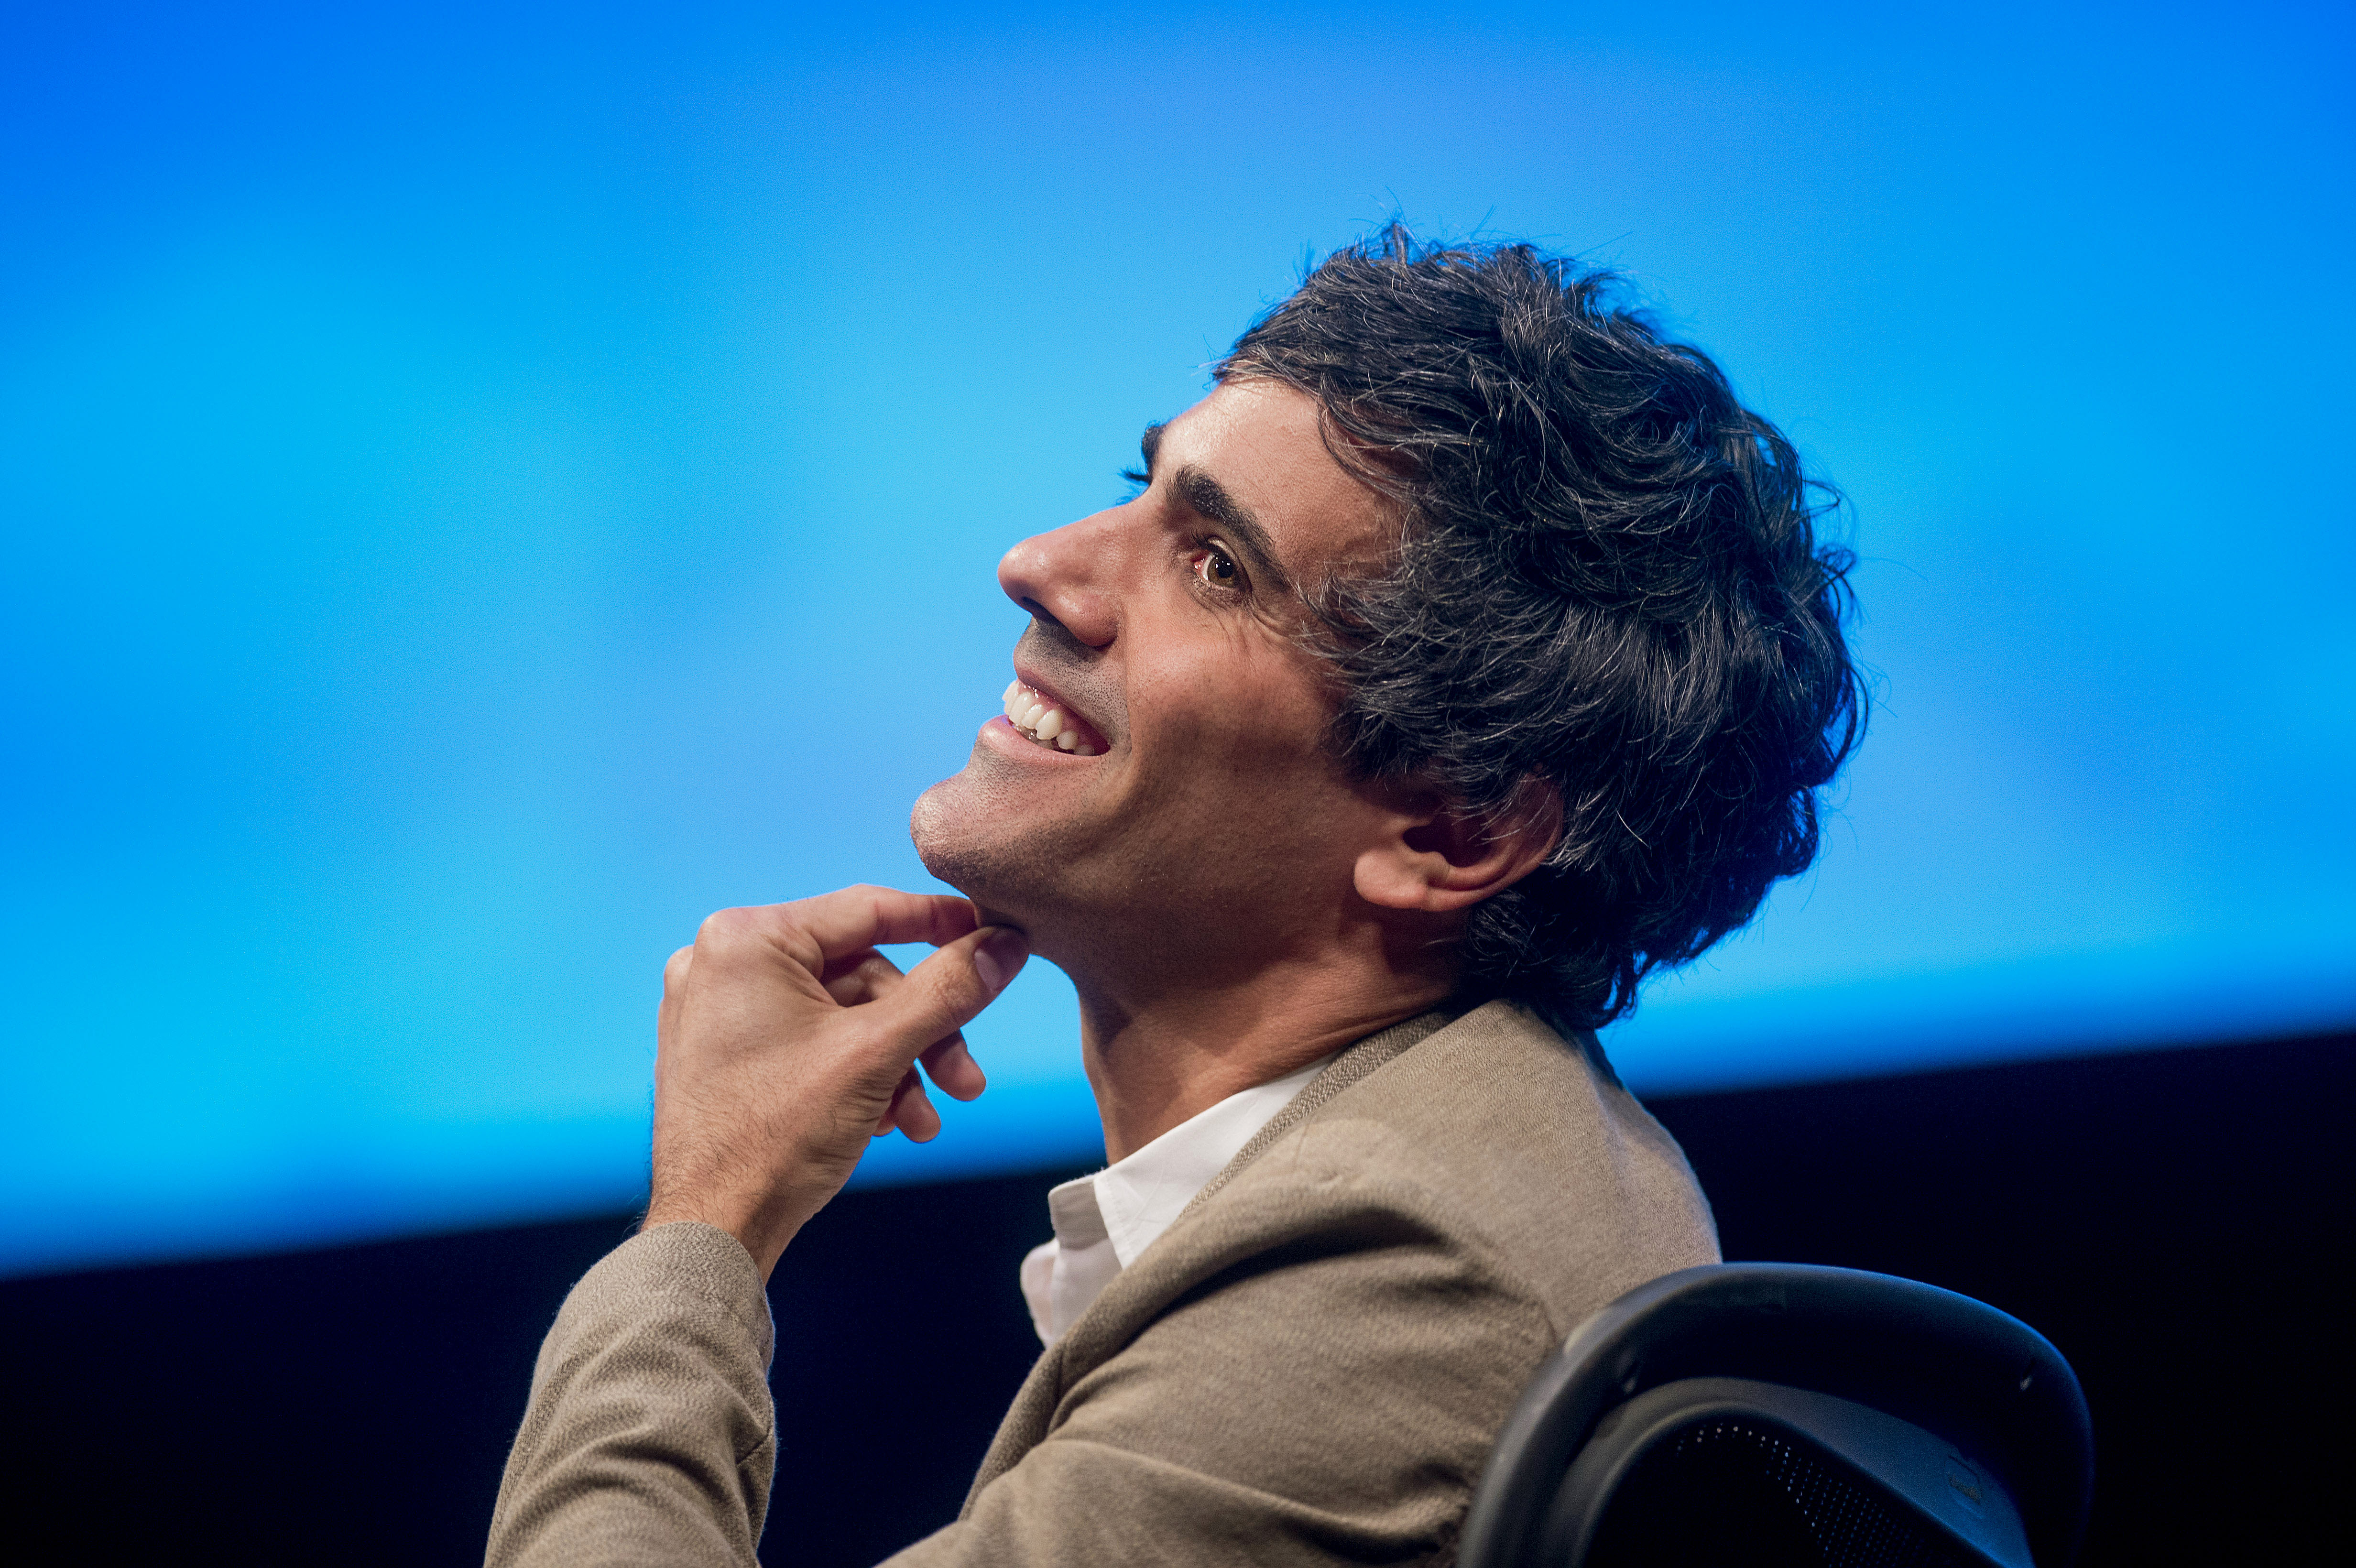 Jeremy Stoppelman, chief executive officer and co-founder of Yelp Inc., smiles during a panel discussion at the DreamForce Conference in San Francisco, California on Oct. 13, 2014.